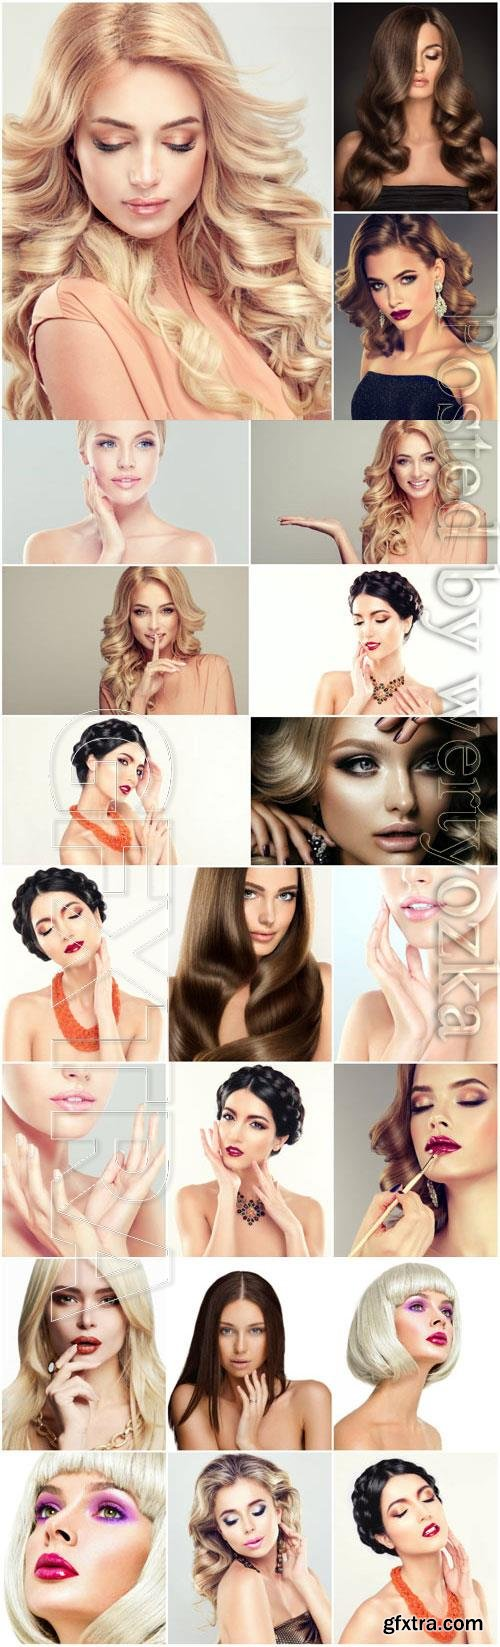 Luxurious girls with different hairstyles and fashionable makeup stock photo